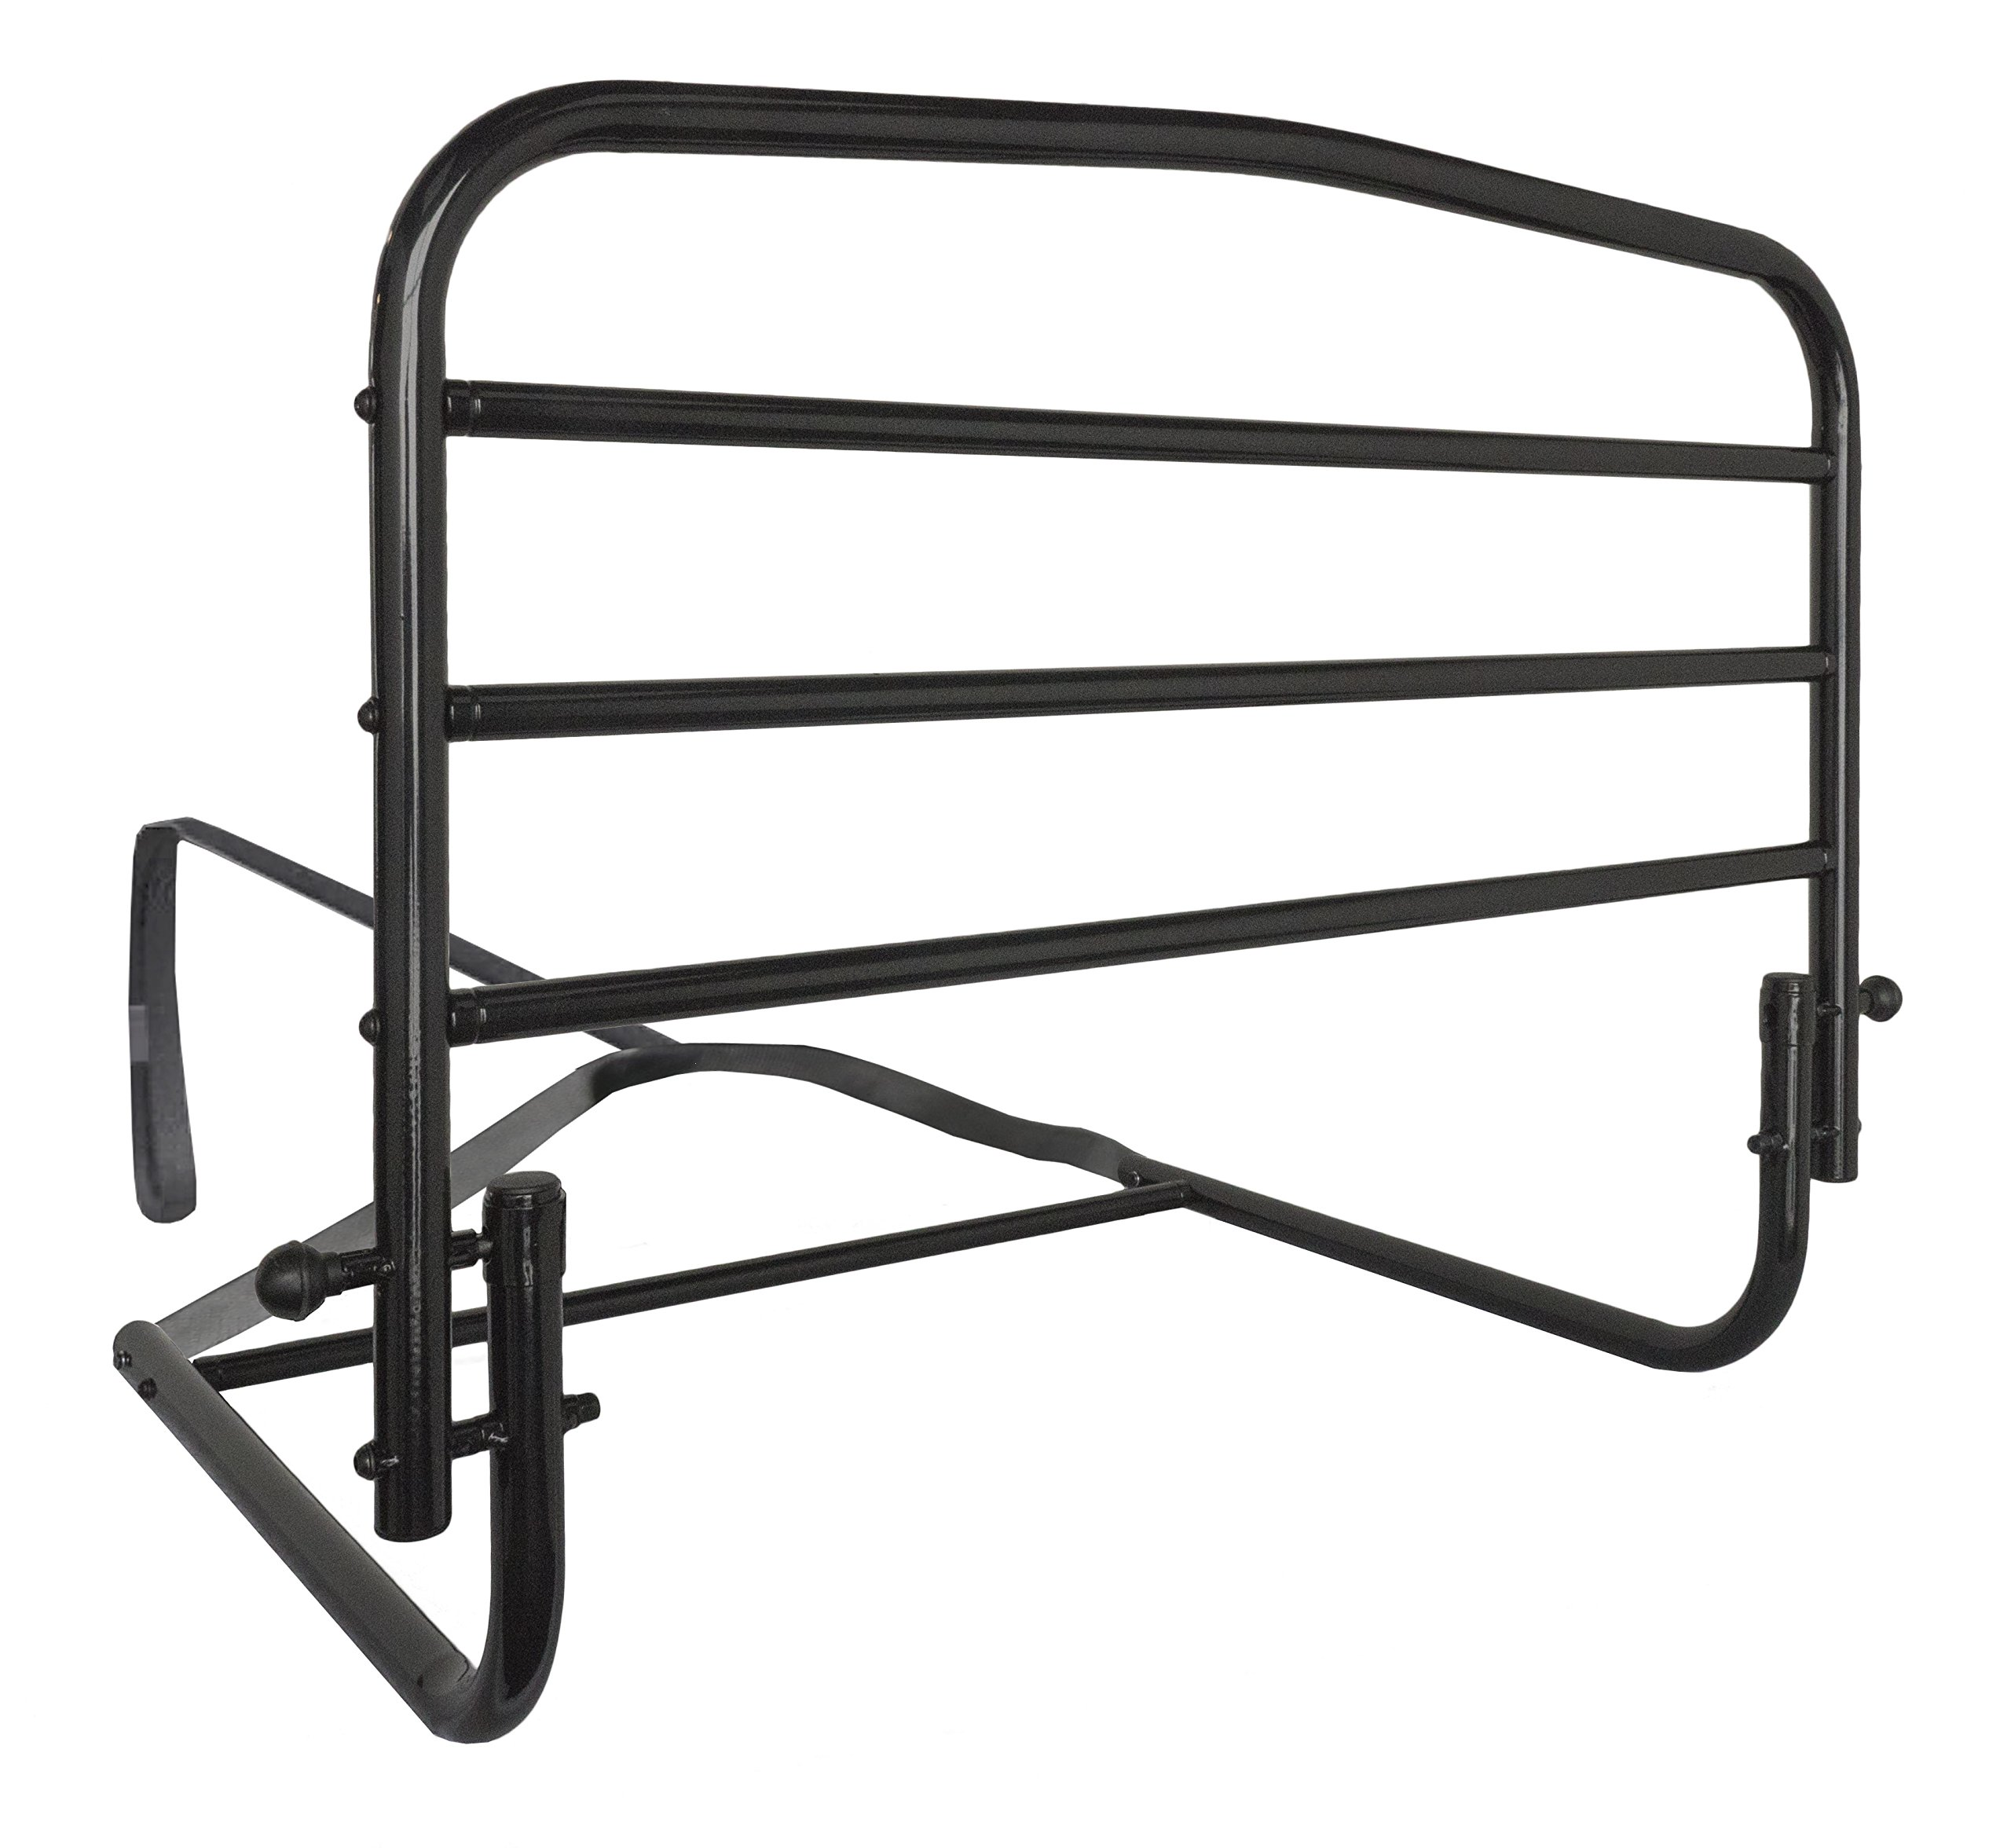 Stander 30'' Safety Adult Bed Rail - Home Elderly Bedside Safety Rail + Swing Down Assist Handle by Stander